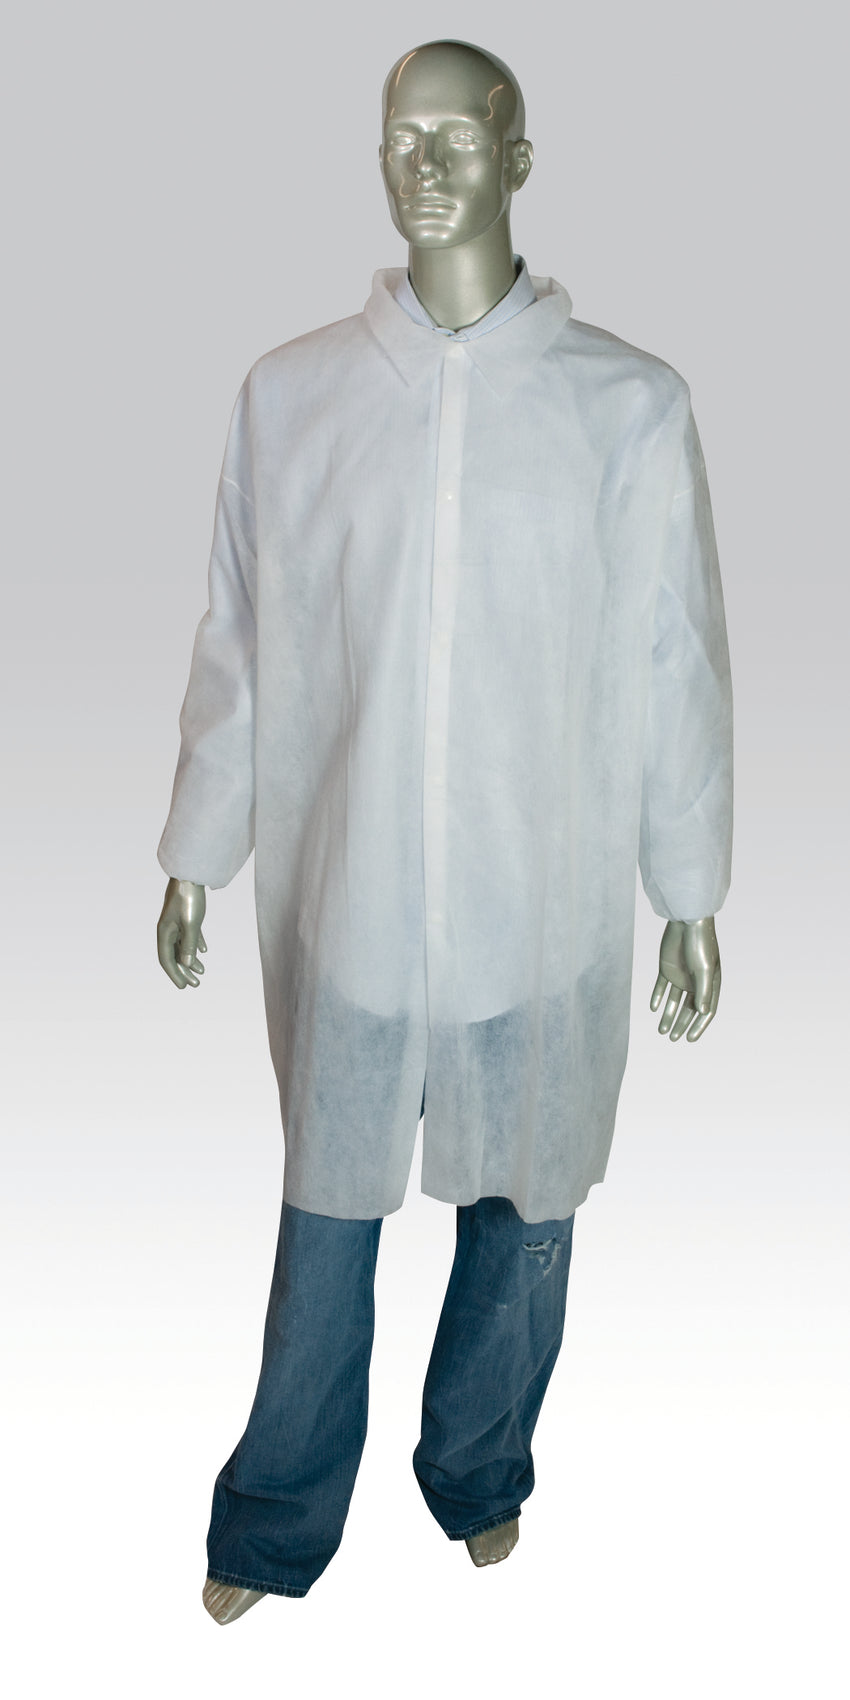 HD POLYPRO LAB COAT NO POCKET E-WRIST SNAPS COLLAR WHITE 5XL